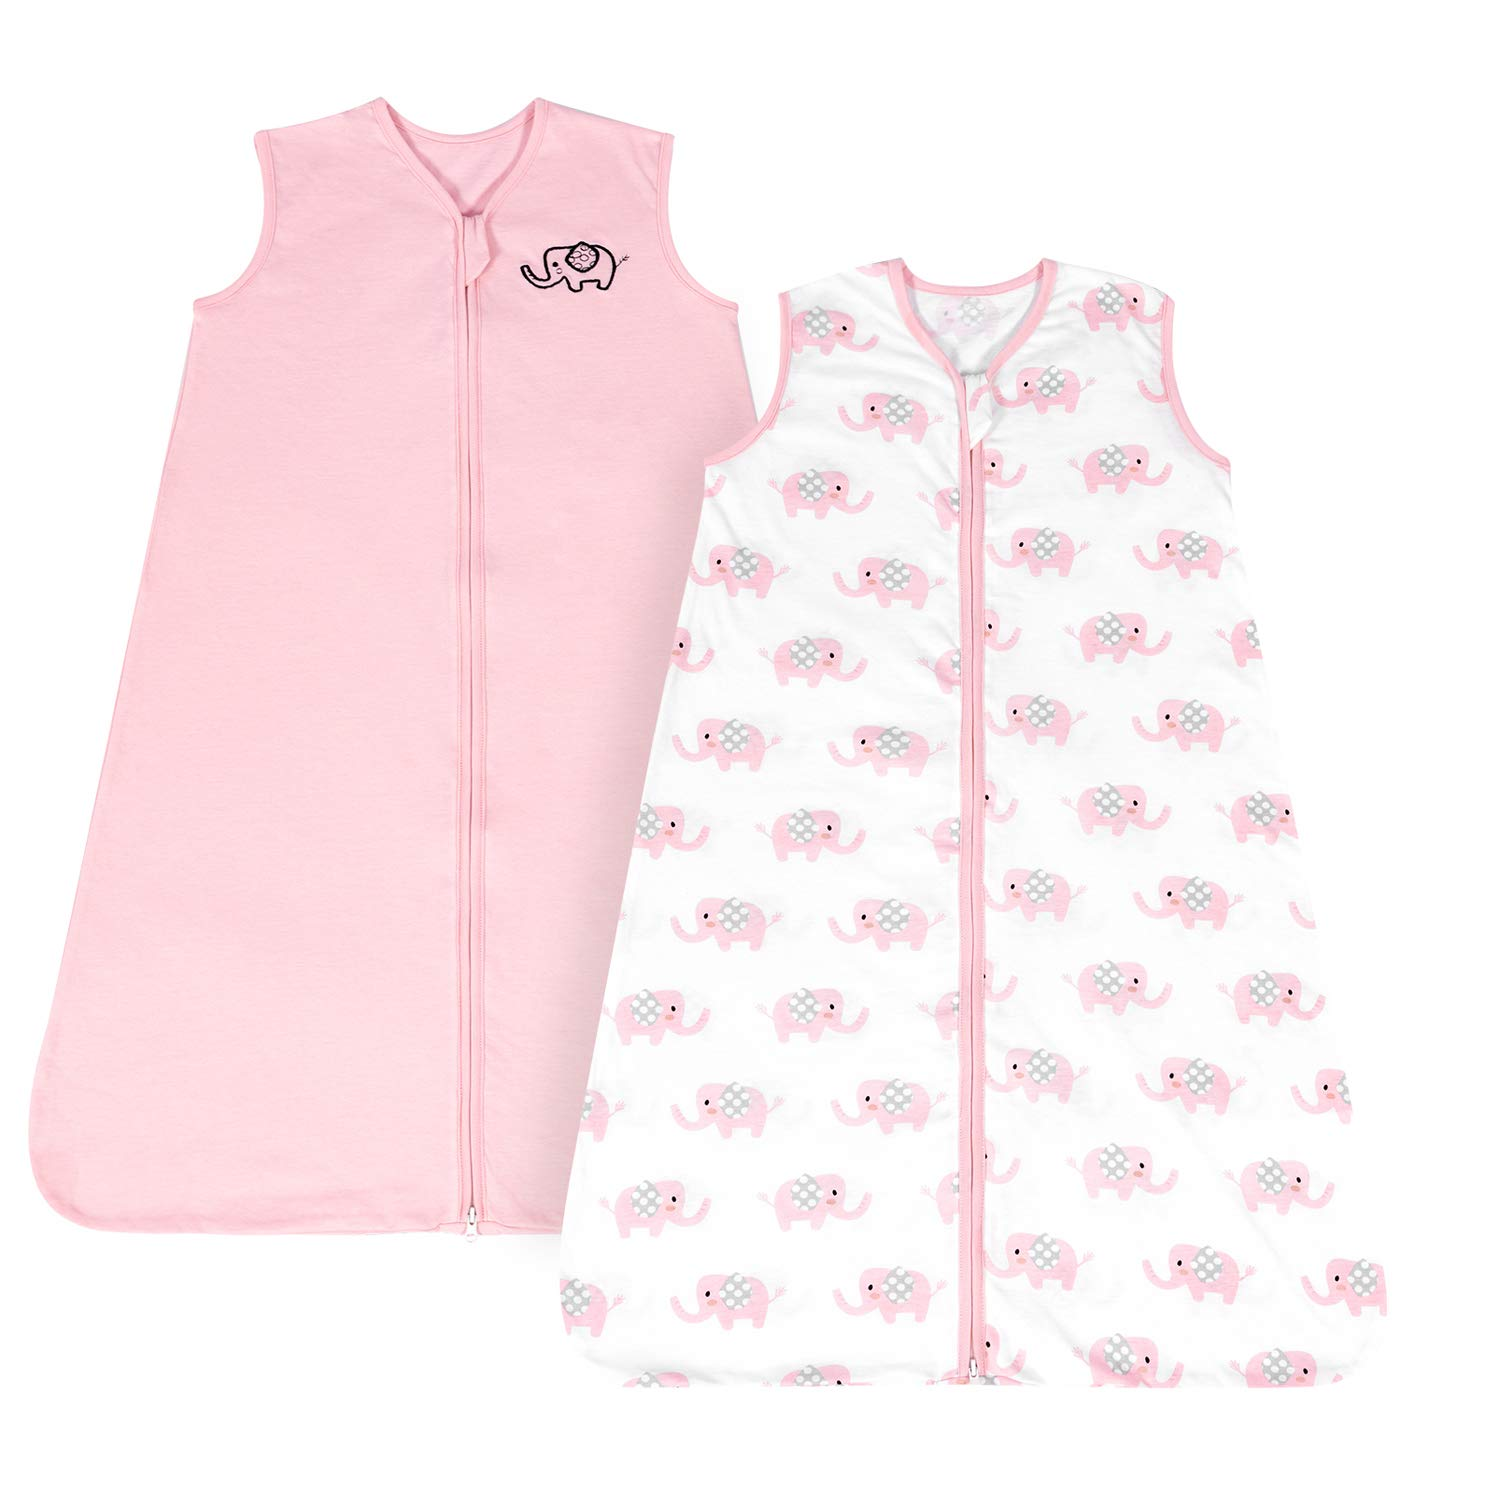 TILLYOU X-Large XL Breathable Cotton Baby Wearable Blanket with 2-Way Zipper, Super Soft Lightweight 2-Pack Sleeveless Sleep Bag Sack for Boys, Fits Infants Newborns Age 18-24 Months, Pink Elephant